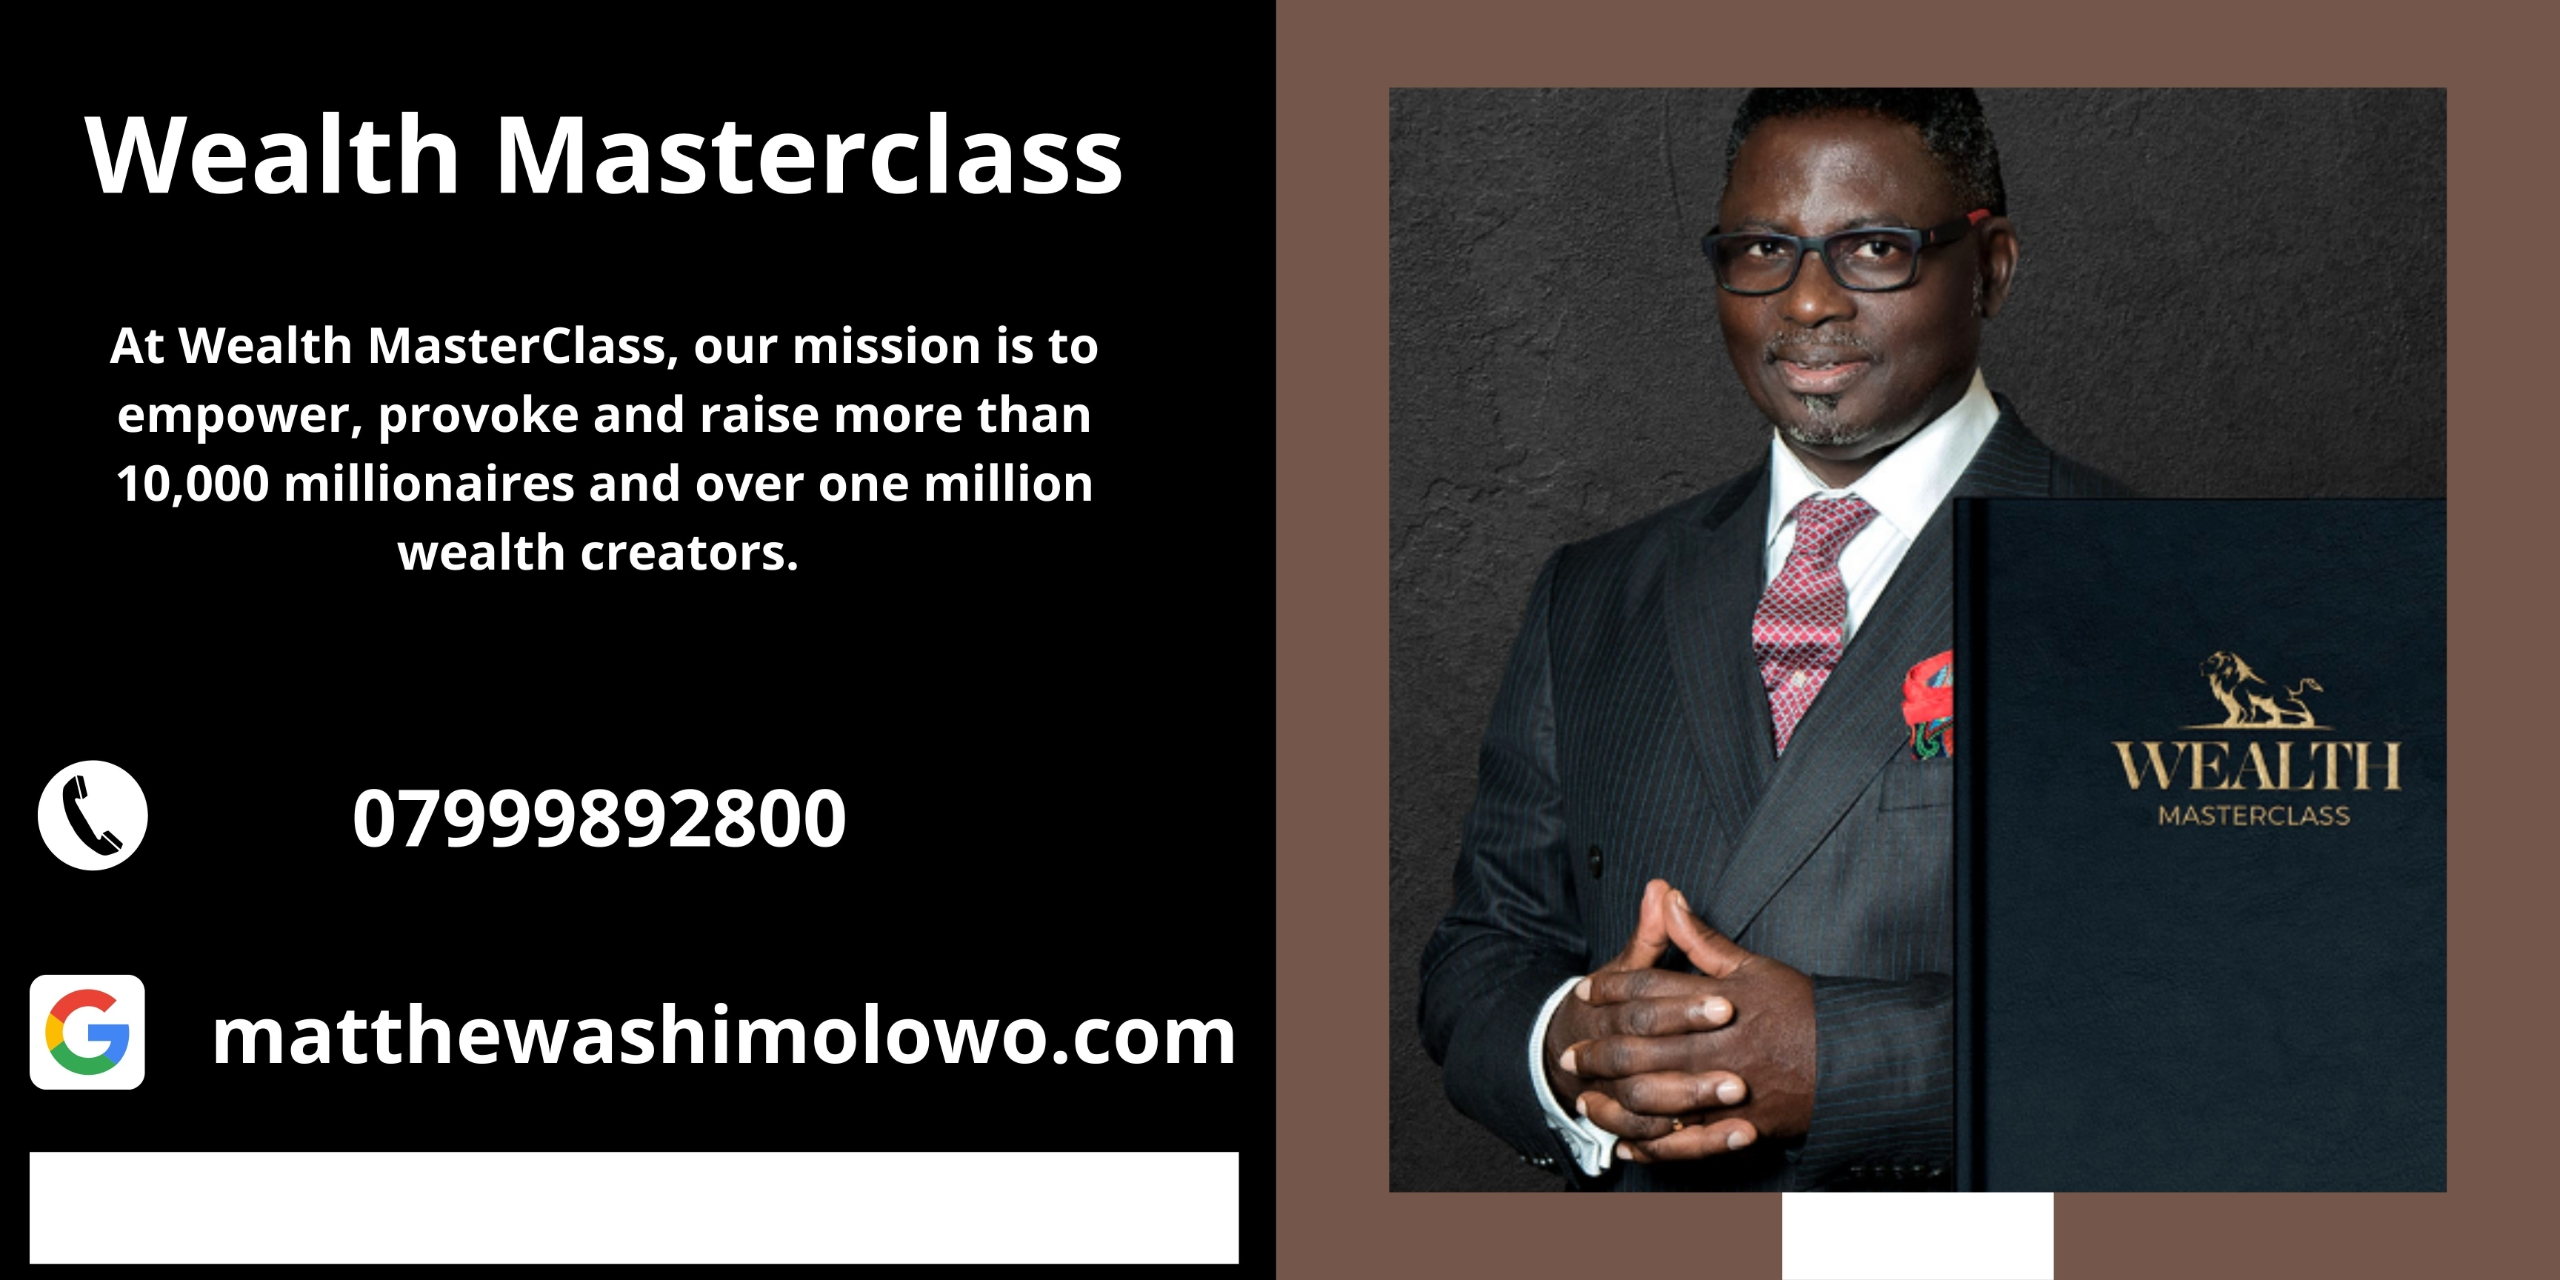 Wealth MasterClass (@wealthmasterclass) Cover Image